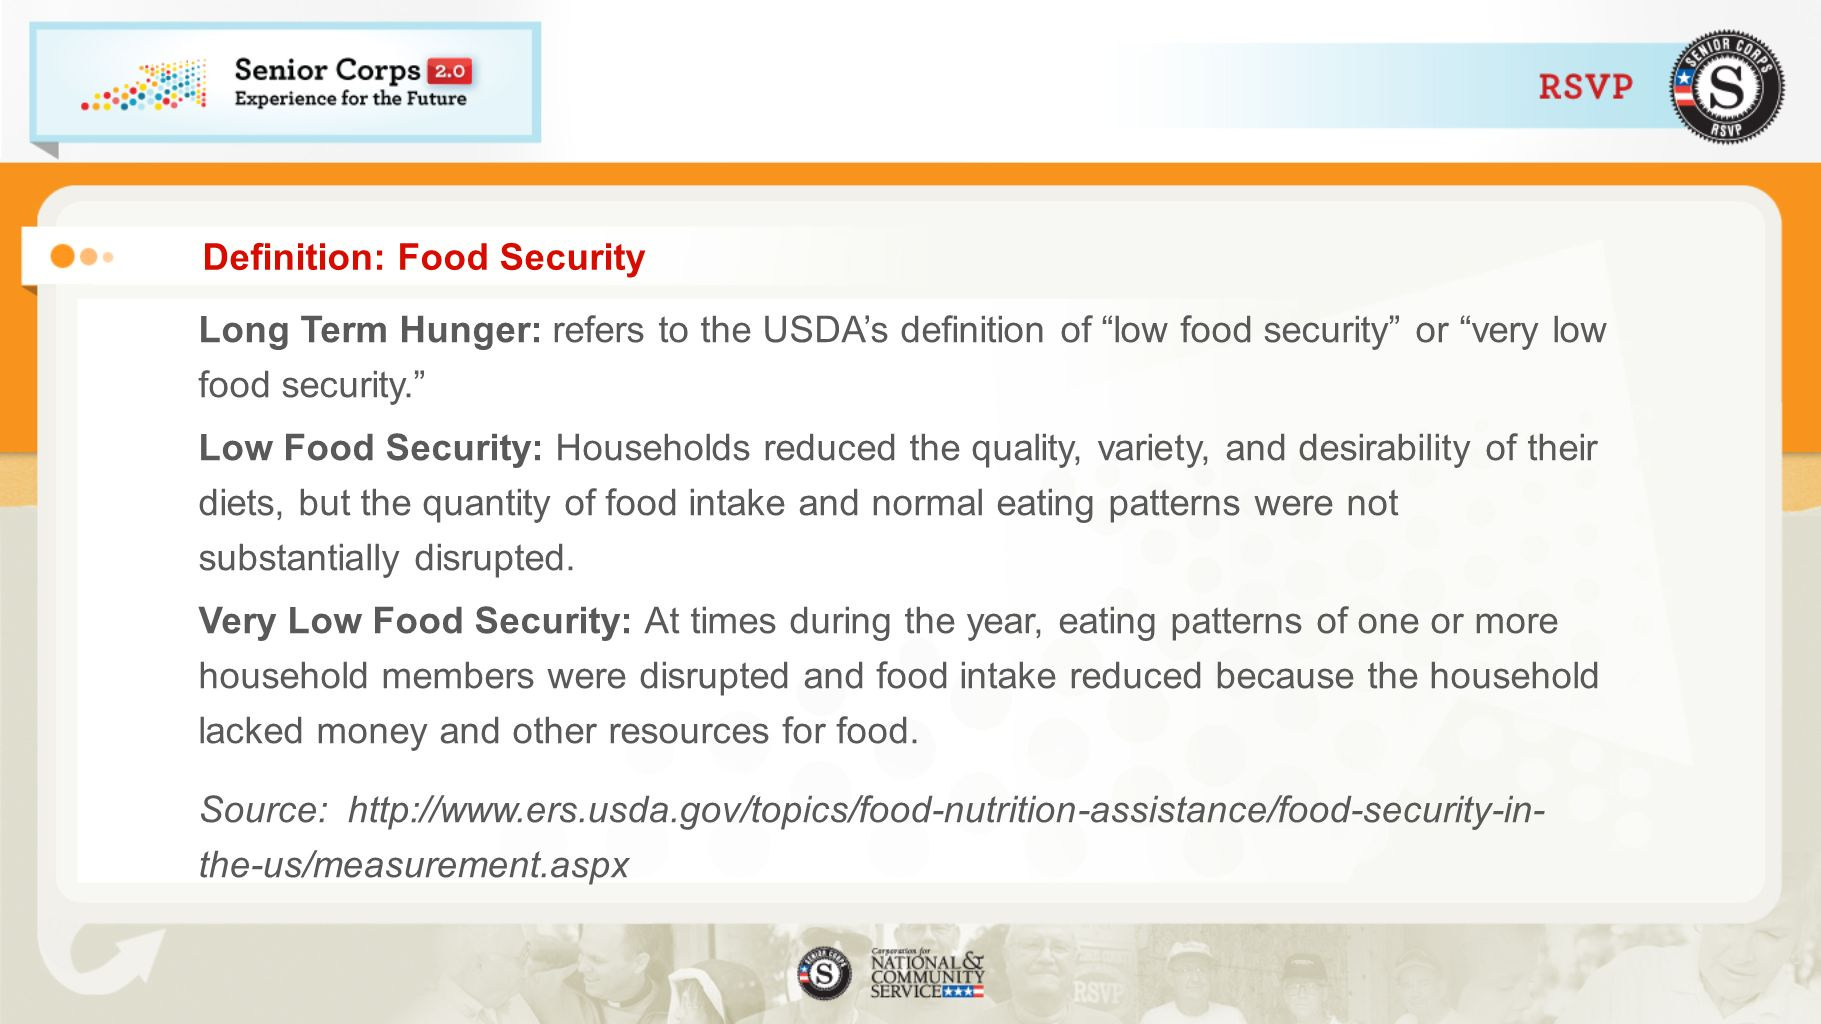 Definition: Food Security